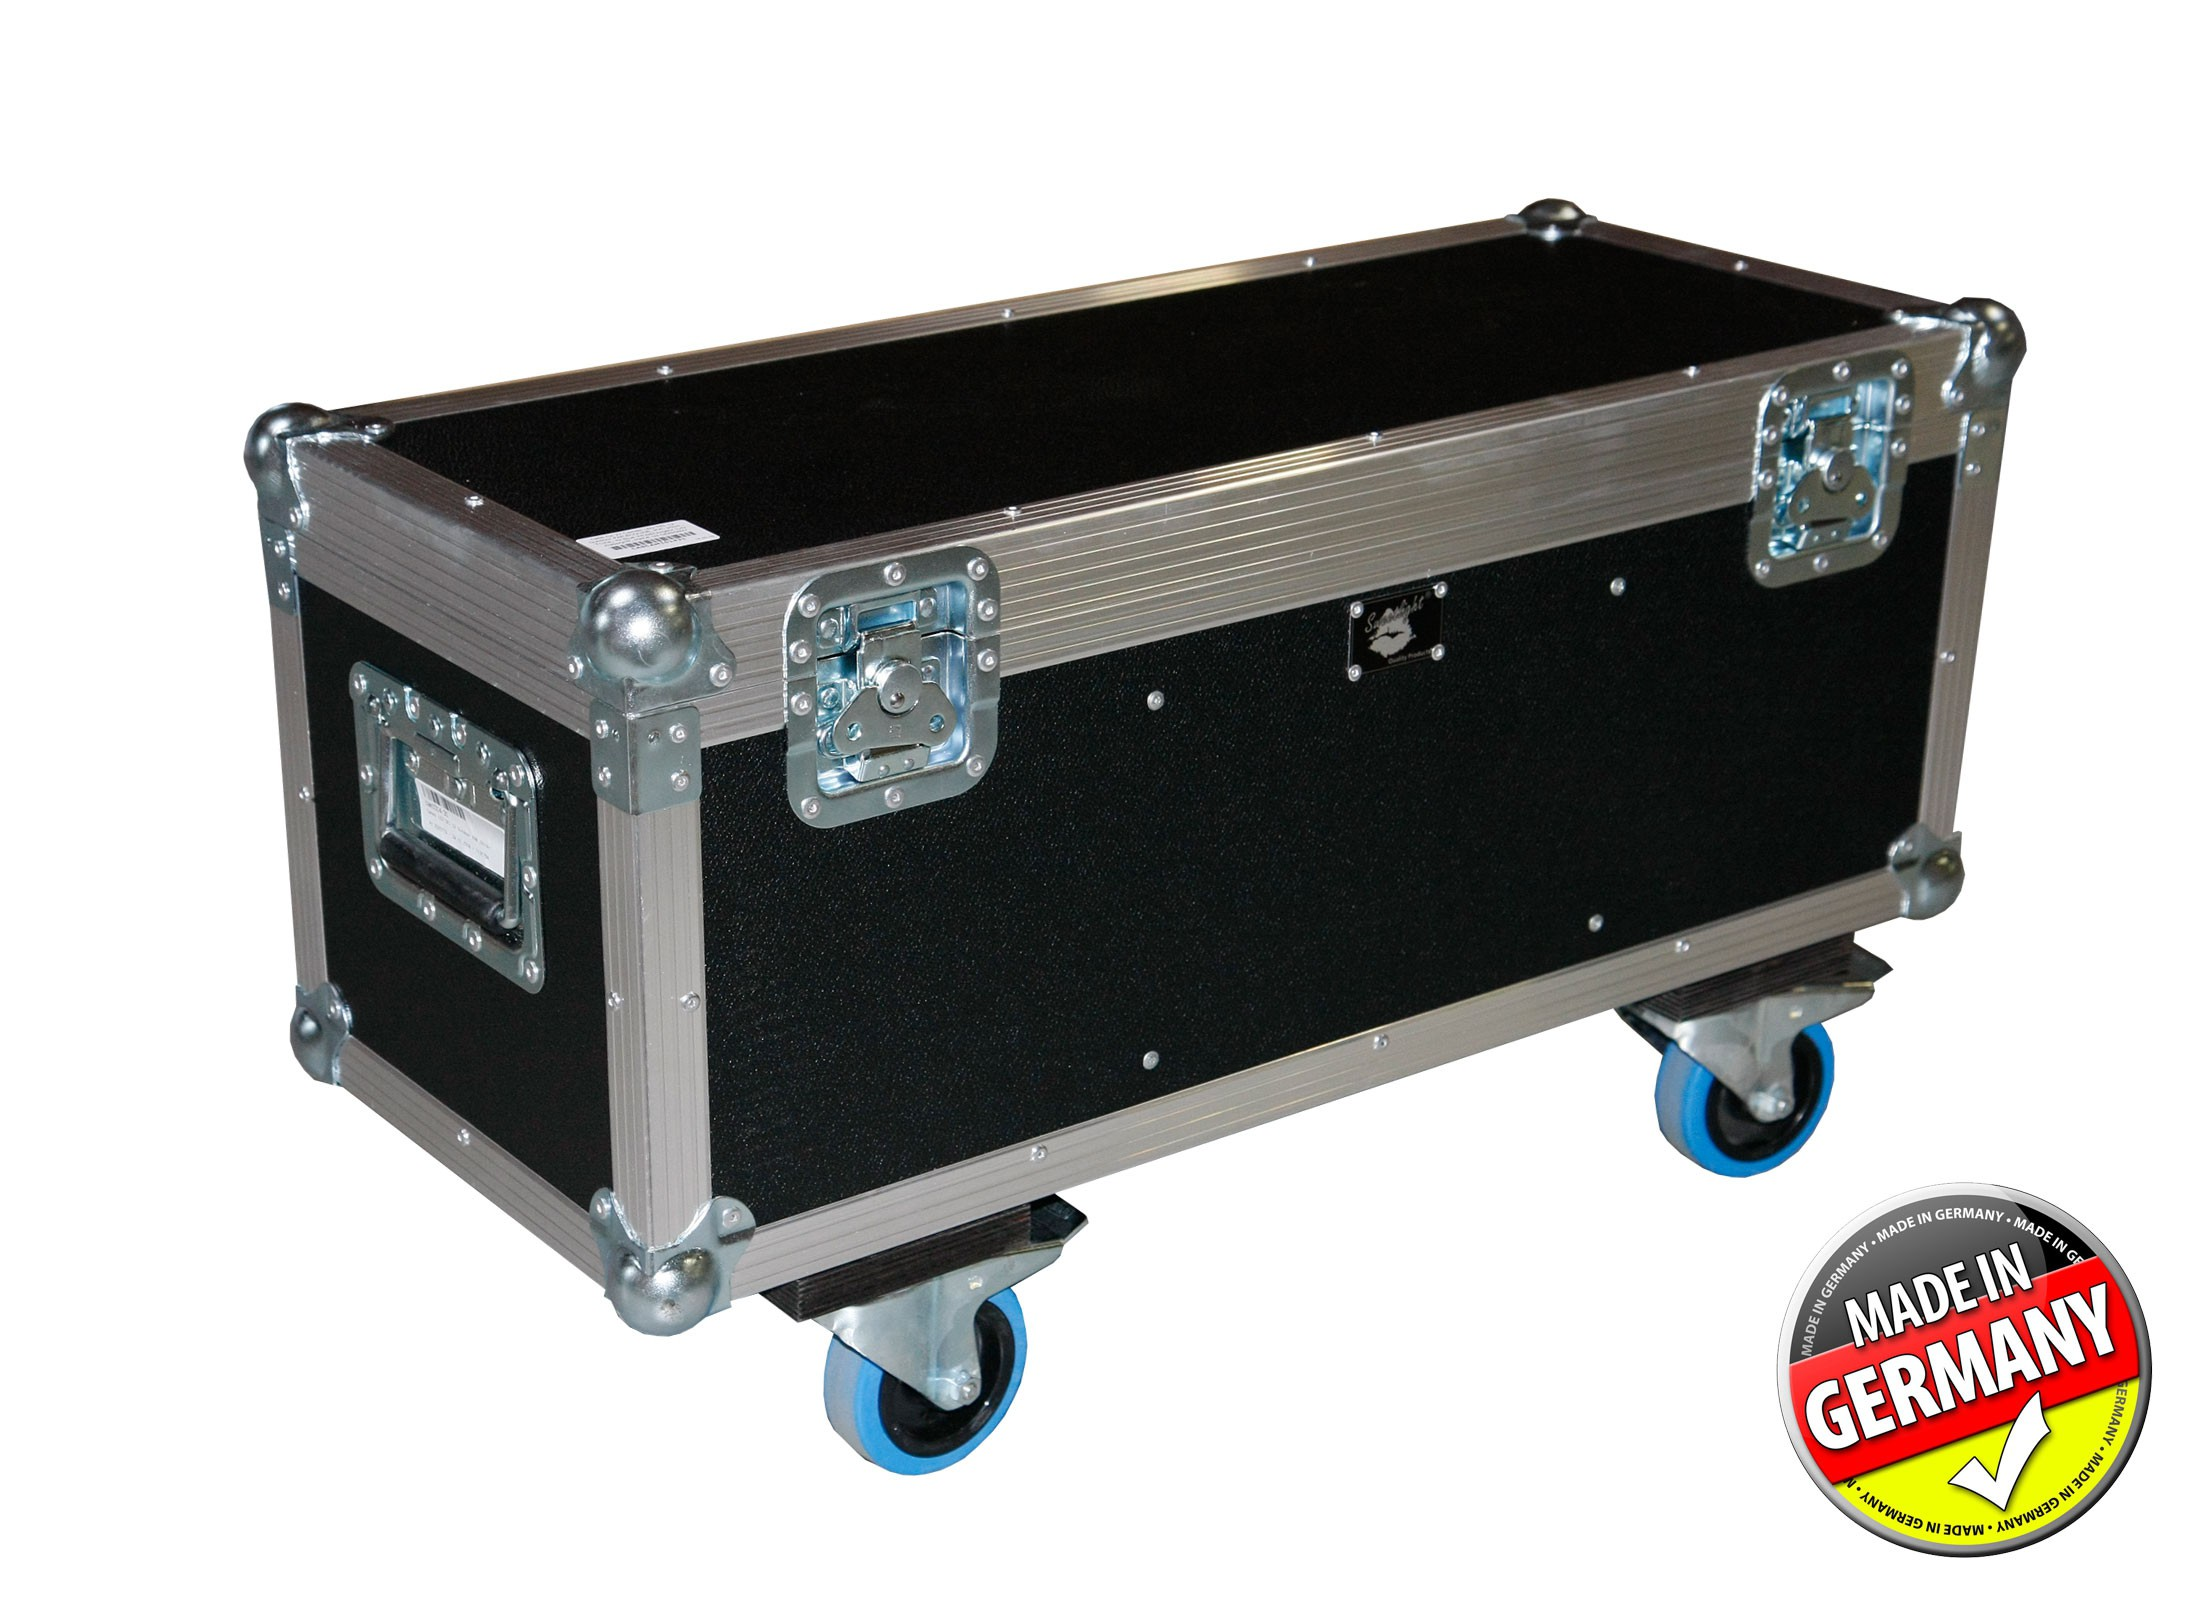 Outdoor Truhe.Case Für 2x Cameo Led Tri 12 Outdoor Par Ecoline Pvc Black Chest 4x Blue Wheel 2x Braked 4x Handle Made In Germany